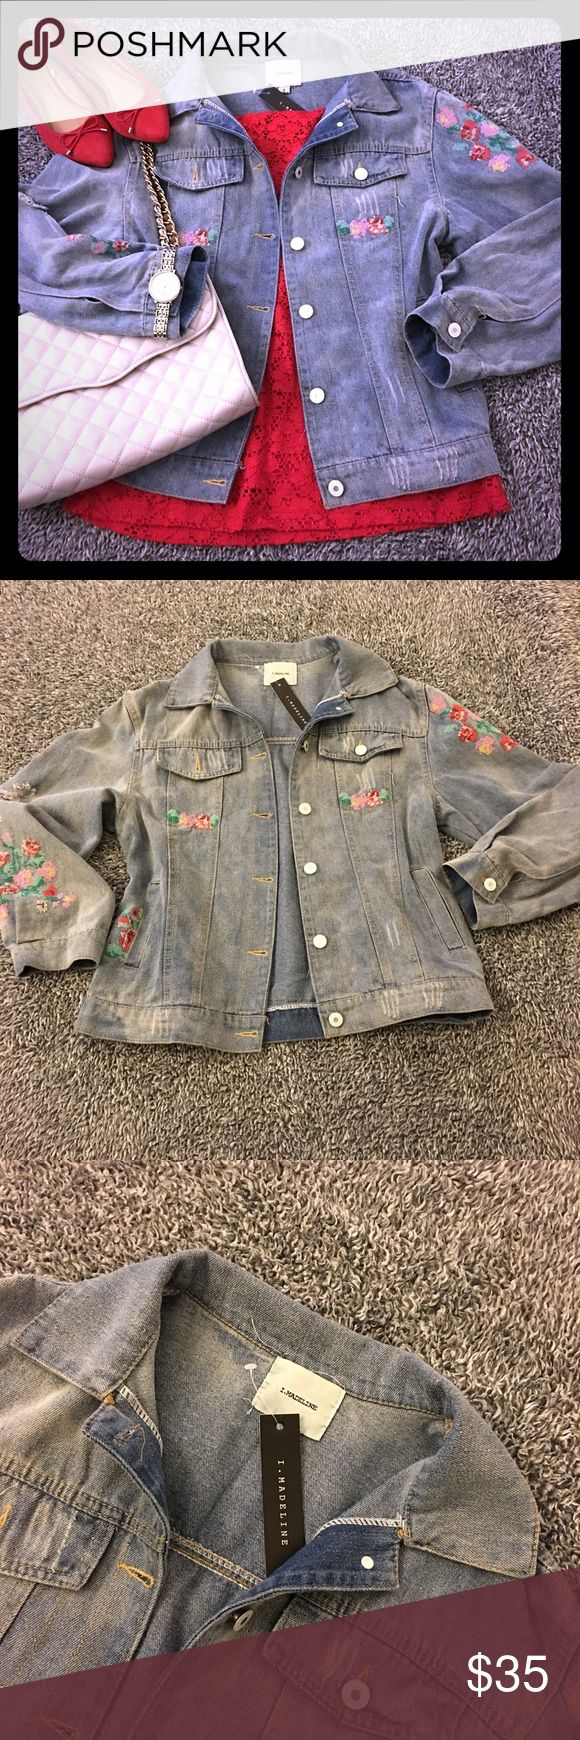 Denim jacket with floral embroidery - NWT! Such a cute jacket with feminine floral embroidery!! Also has some distressing to the fabric. Lovely wash, comfy fit and it's new! Excellent condition & SF! Tag still attached so would make a great gift! (I may keep if it's not snatched up for the right price-it's just so adorable!!) So versatile, cute & stylish! Please see pics for details, condition & measurements! Have questions? Ask me! Offers/bundles are welcomed but please no models/trades…